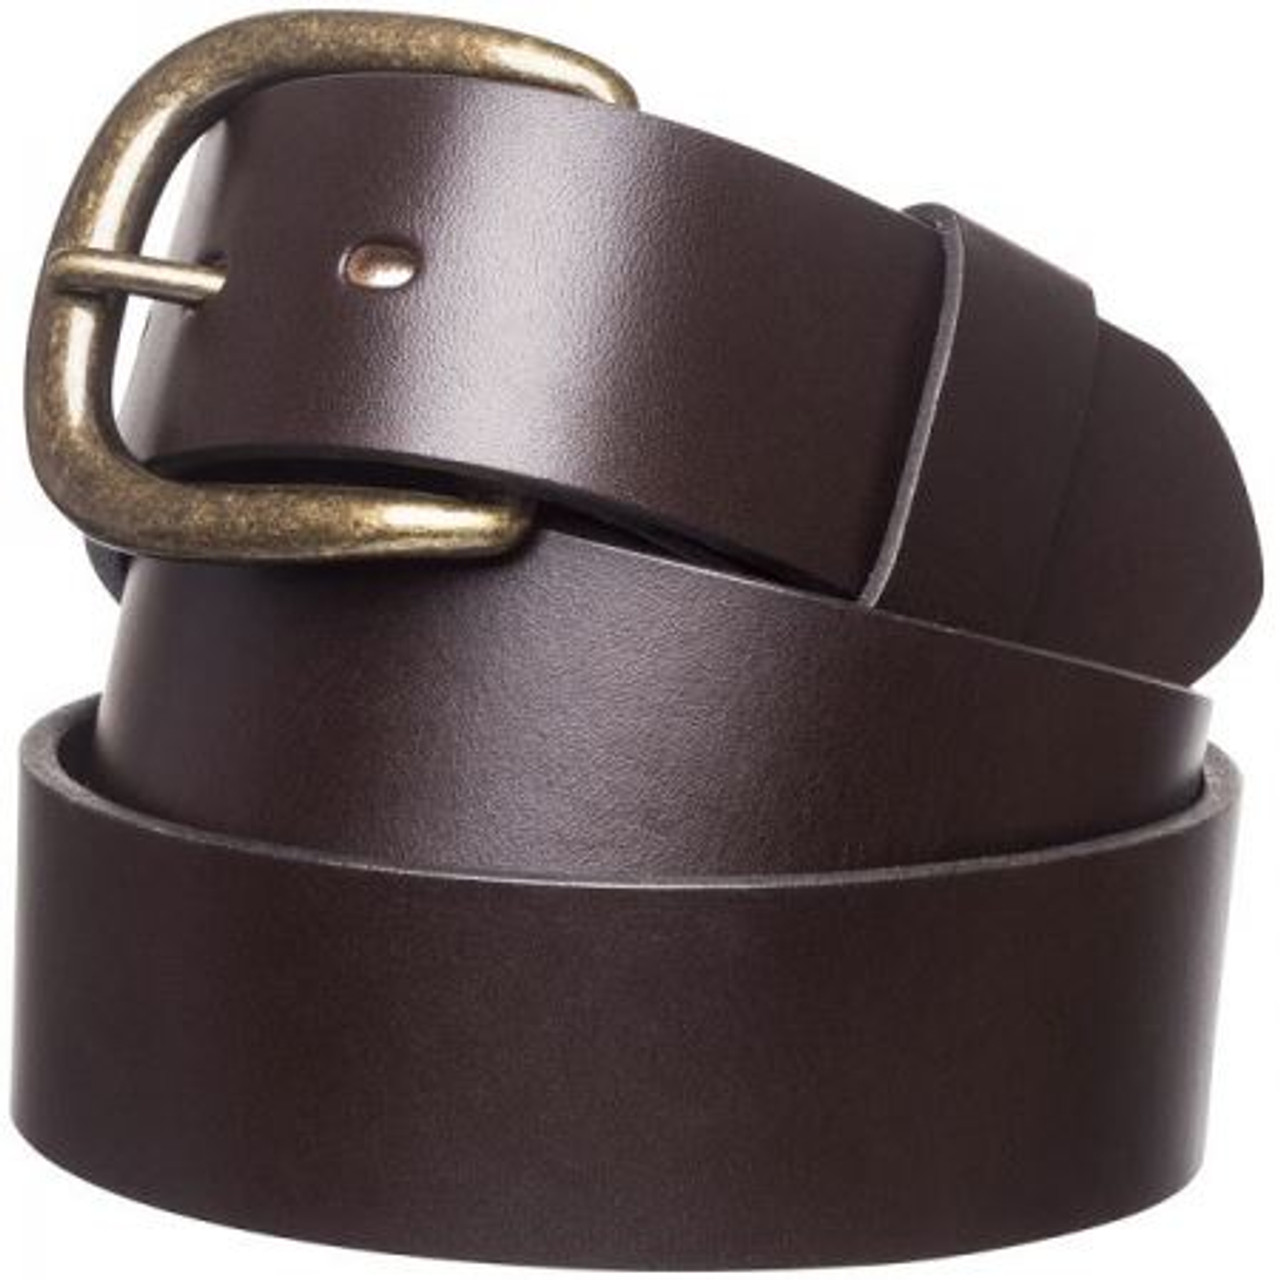 R.M. Williams Traditional 1.5 Inch Belt